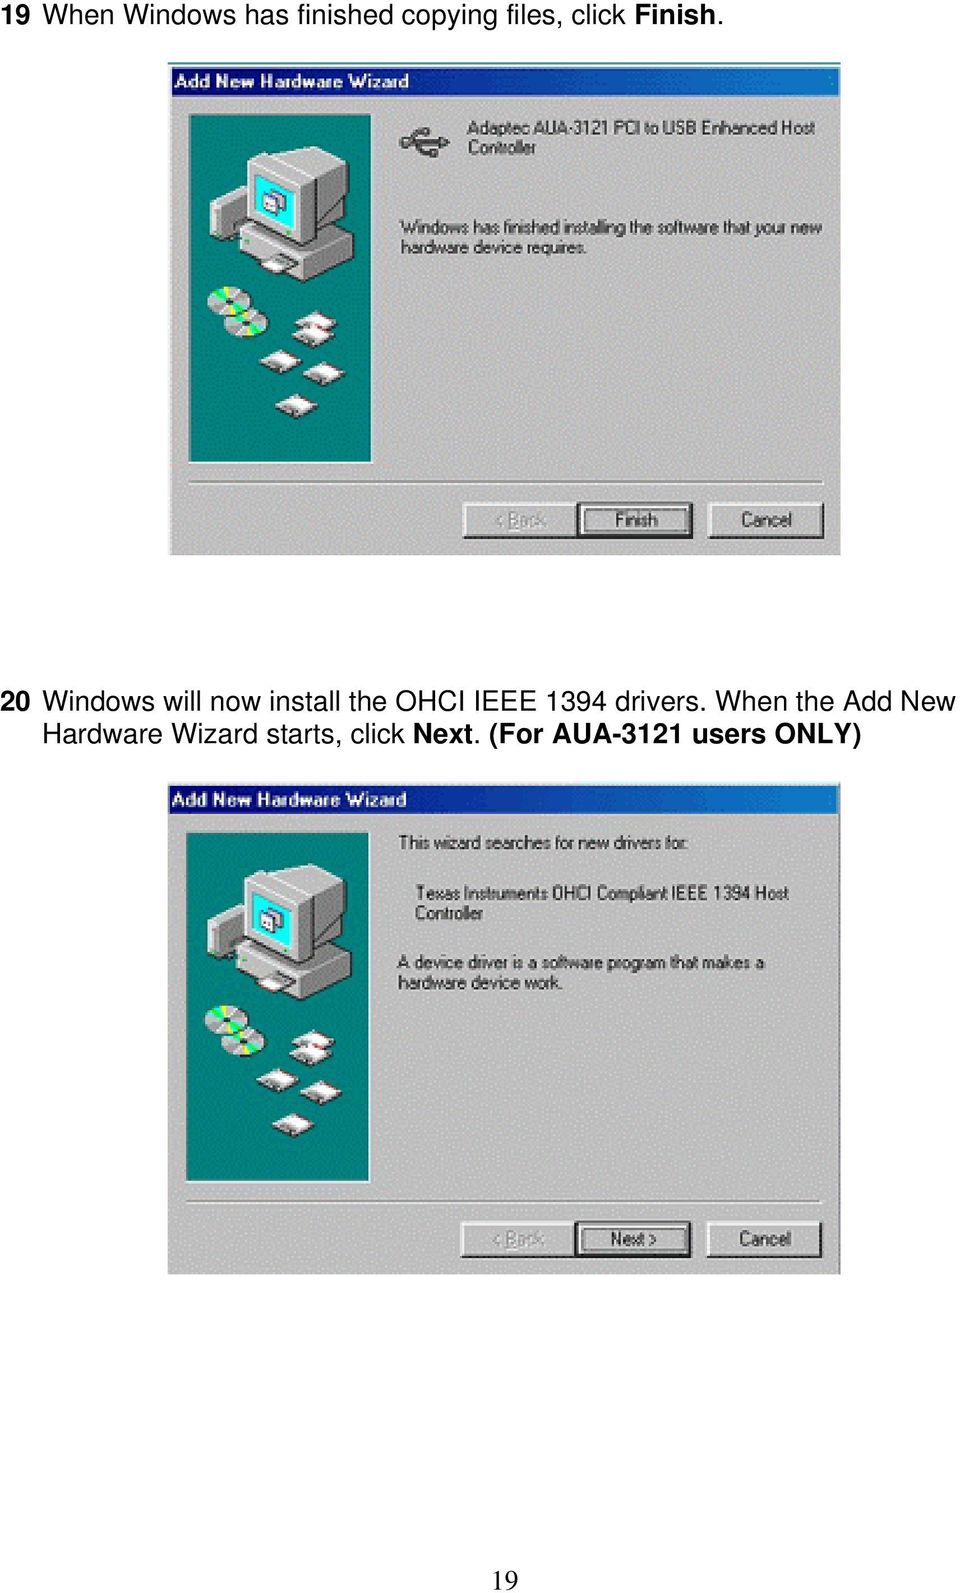 20 Windows will now install the OHCI IEEE 1394